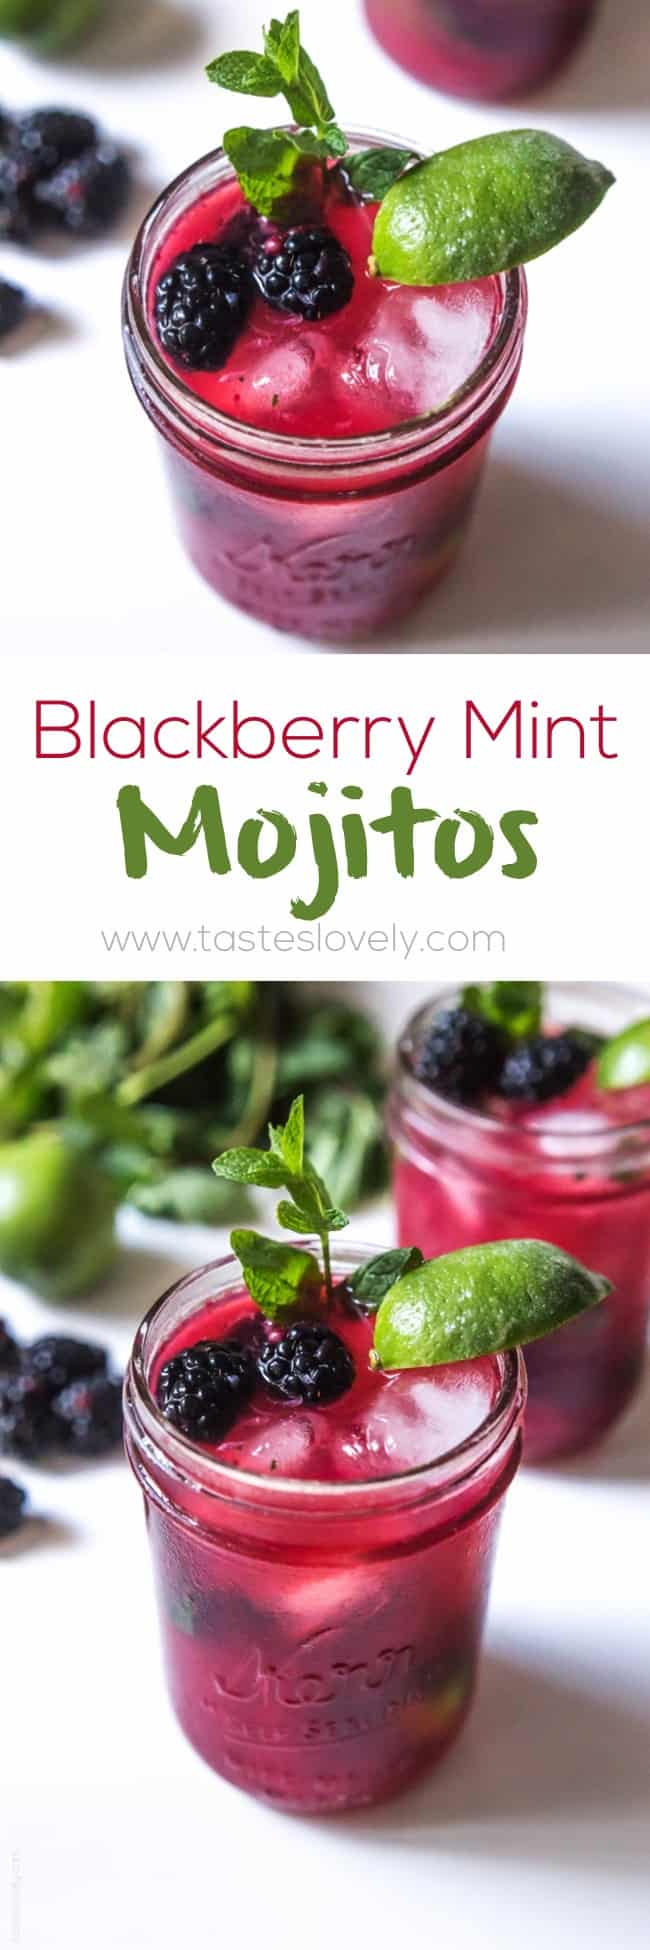 Blackberry Mint Mojitos with fresh blackberry juice